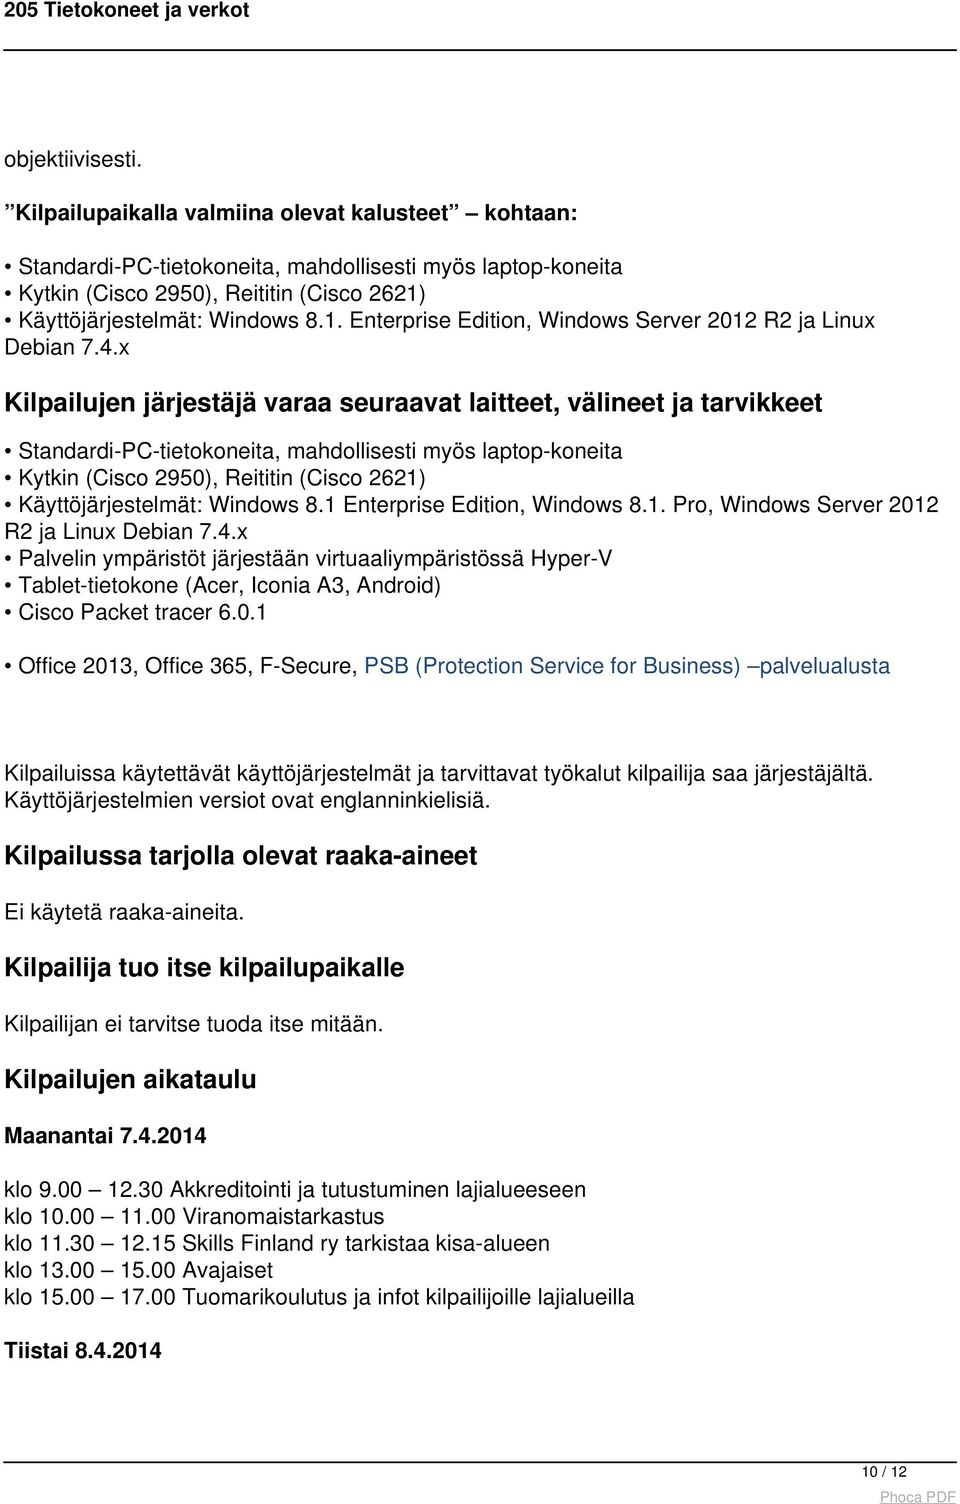 Käyttöjärjestelmät: Windows 8.1. Enterprise Edition, Windows Server 2012 R2 ja Linux Debian 7.4.